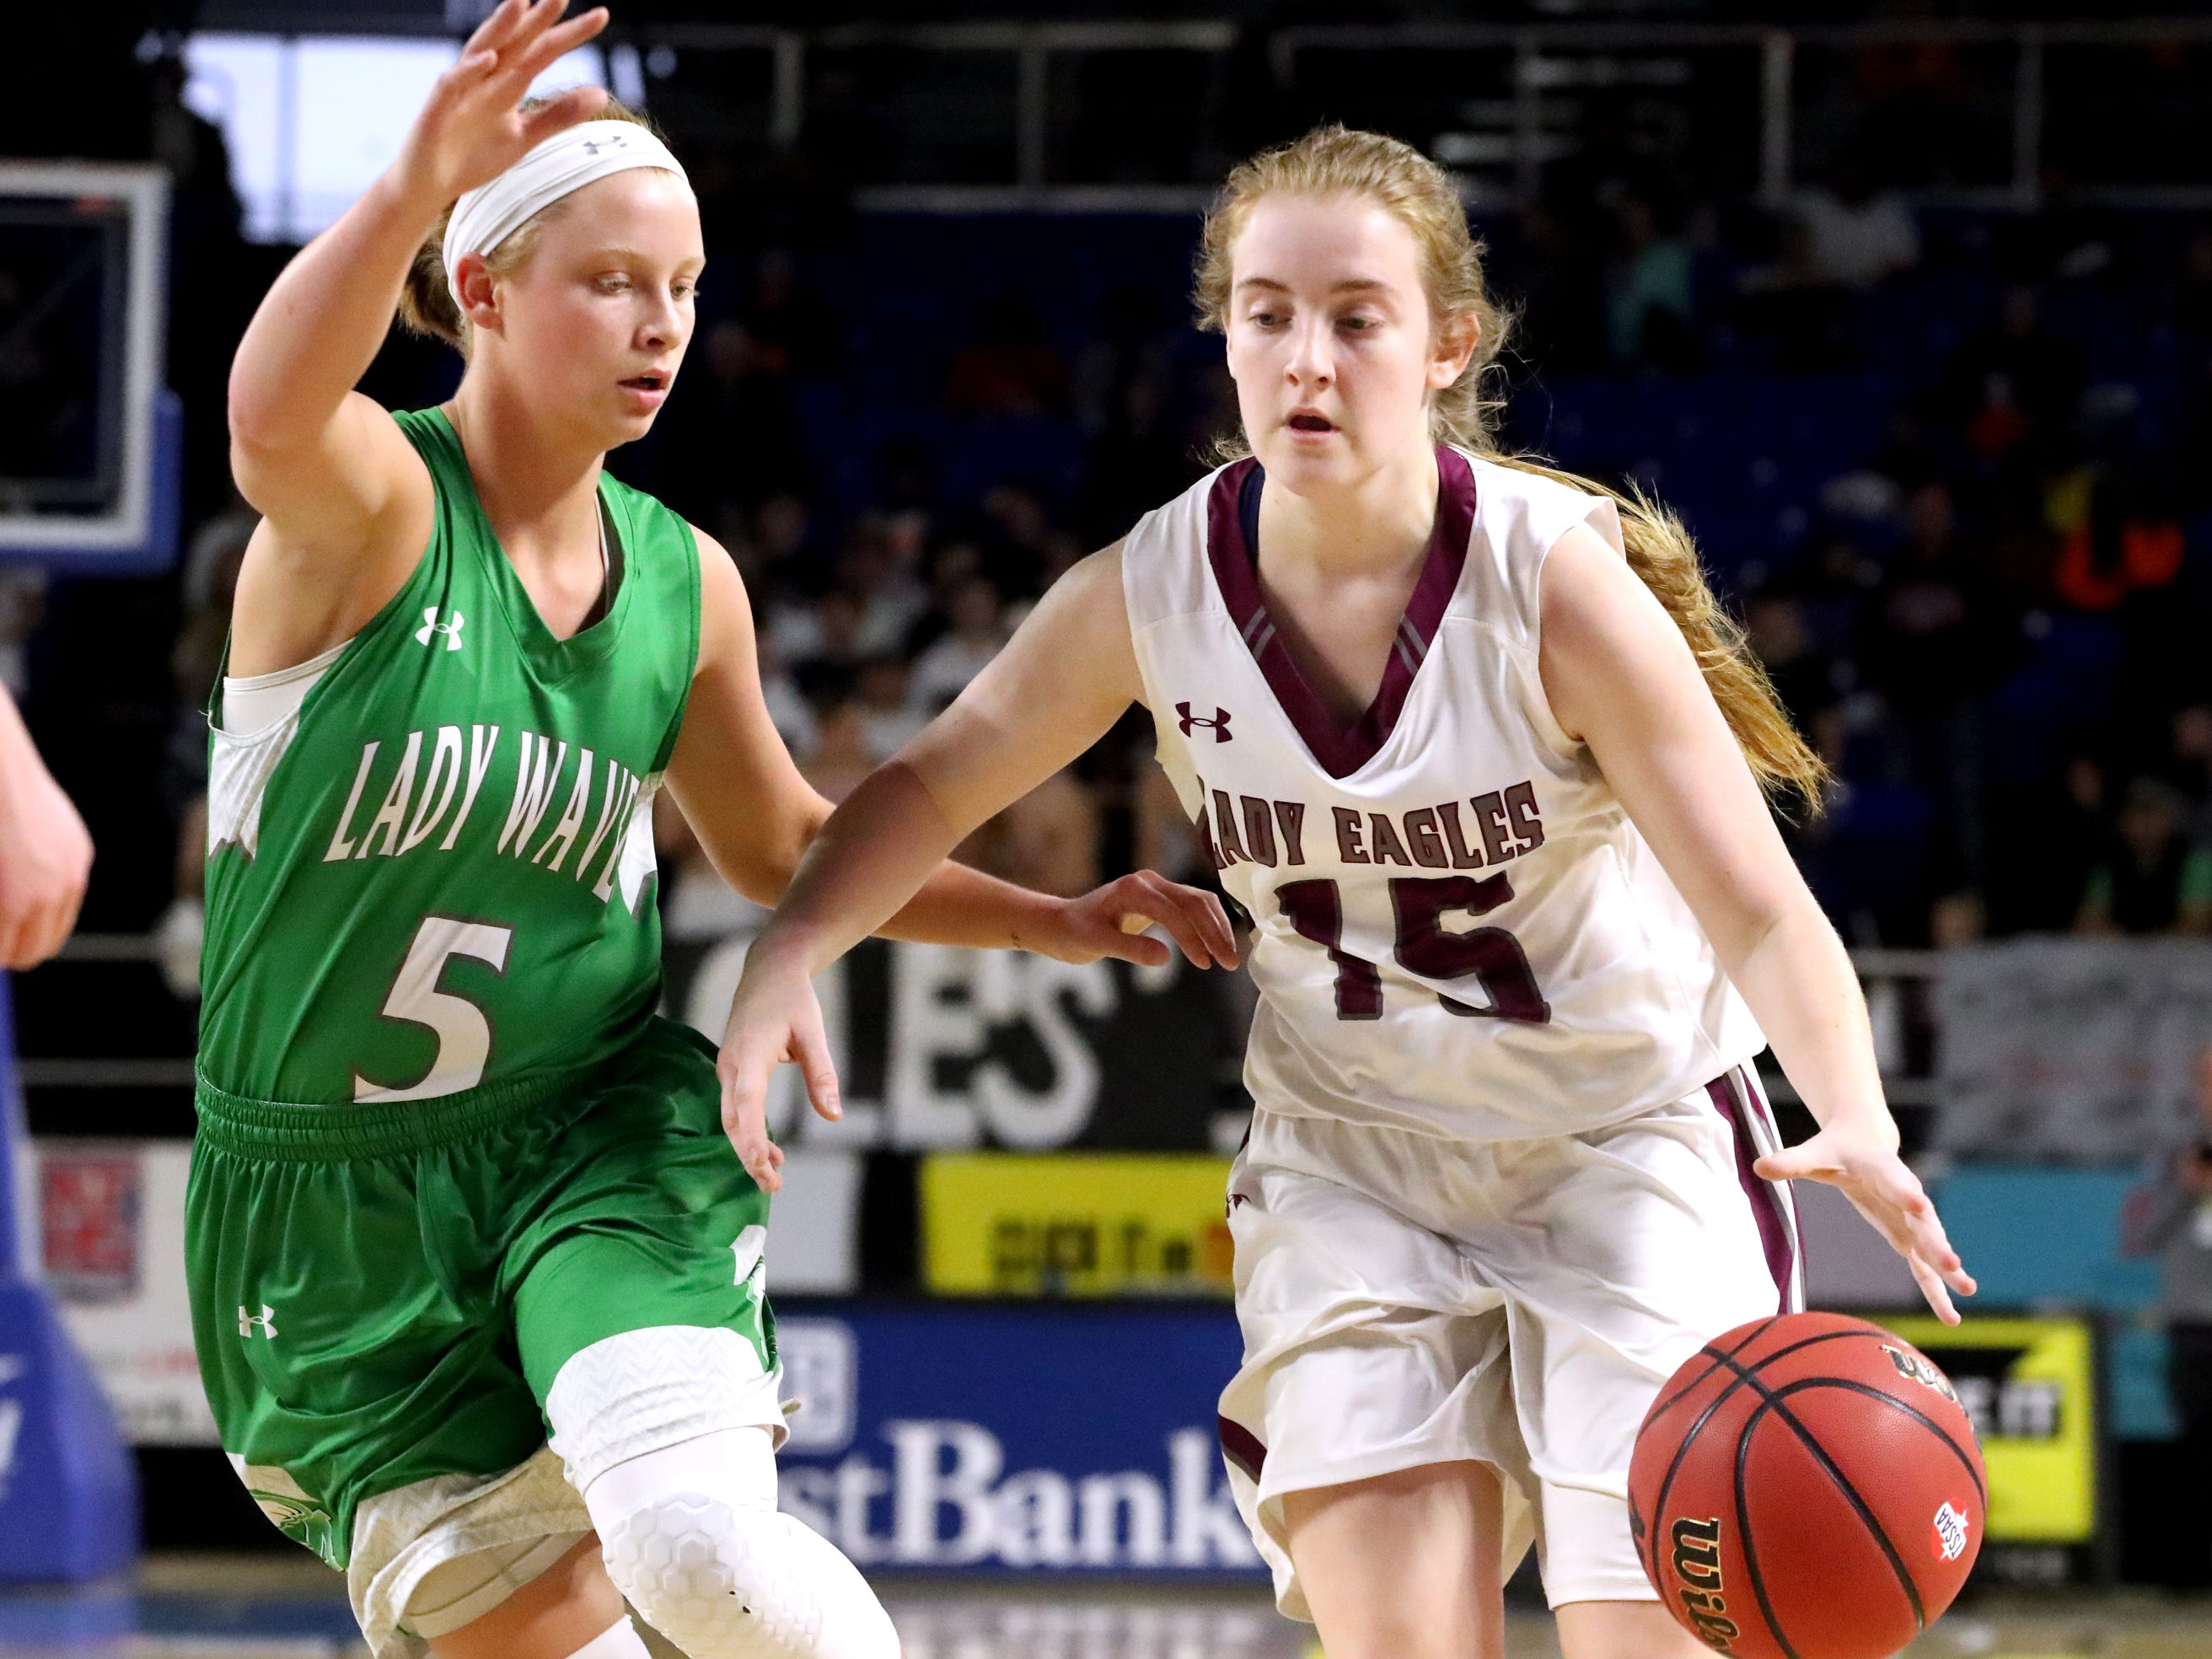 Eagleville's Makayla Moates (15) bring the ball up the court s Midway's Paige Bacon (5) guards her during the quarterfinal round of the TSSAA Div. 1 Class A Girls State Tournament, on Thursday, March 7, 2019, at Murphy Center in Murfreesboro, Tenn.